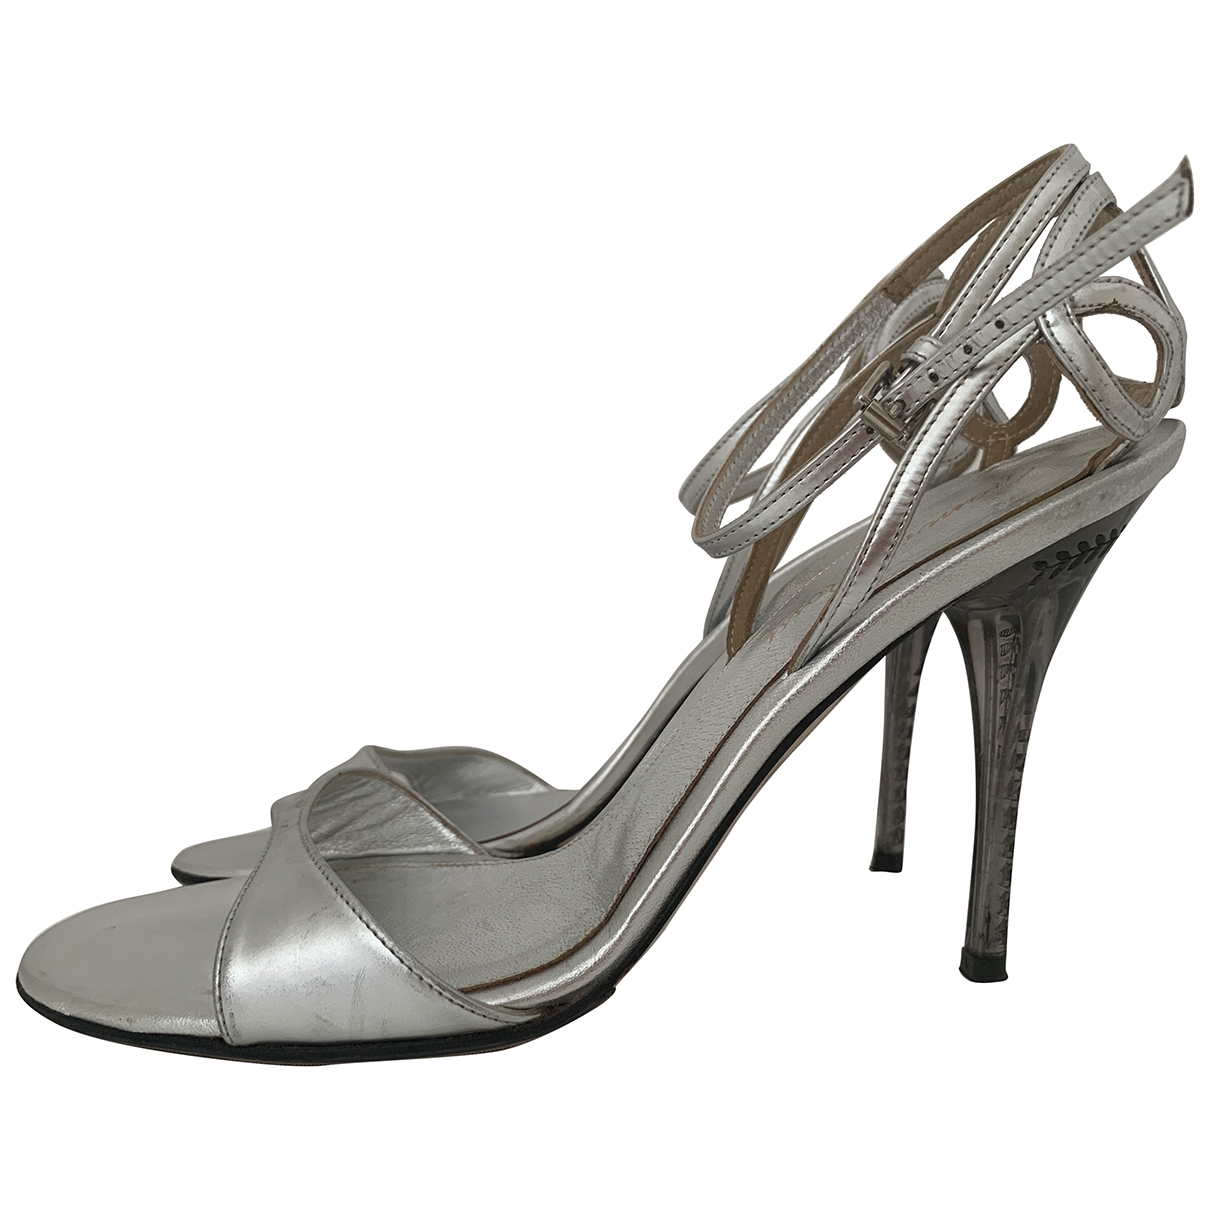 Gianvito Rossi \N Silver Leather Sandals for Women 39.5 EU